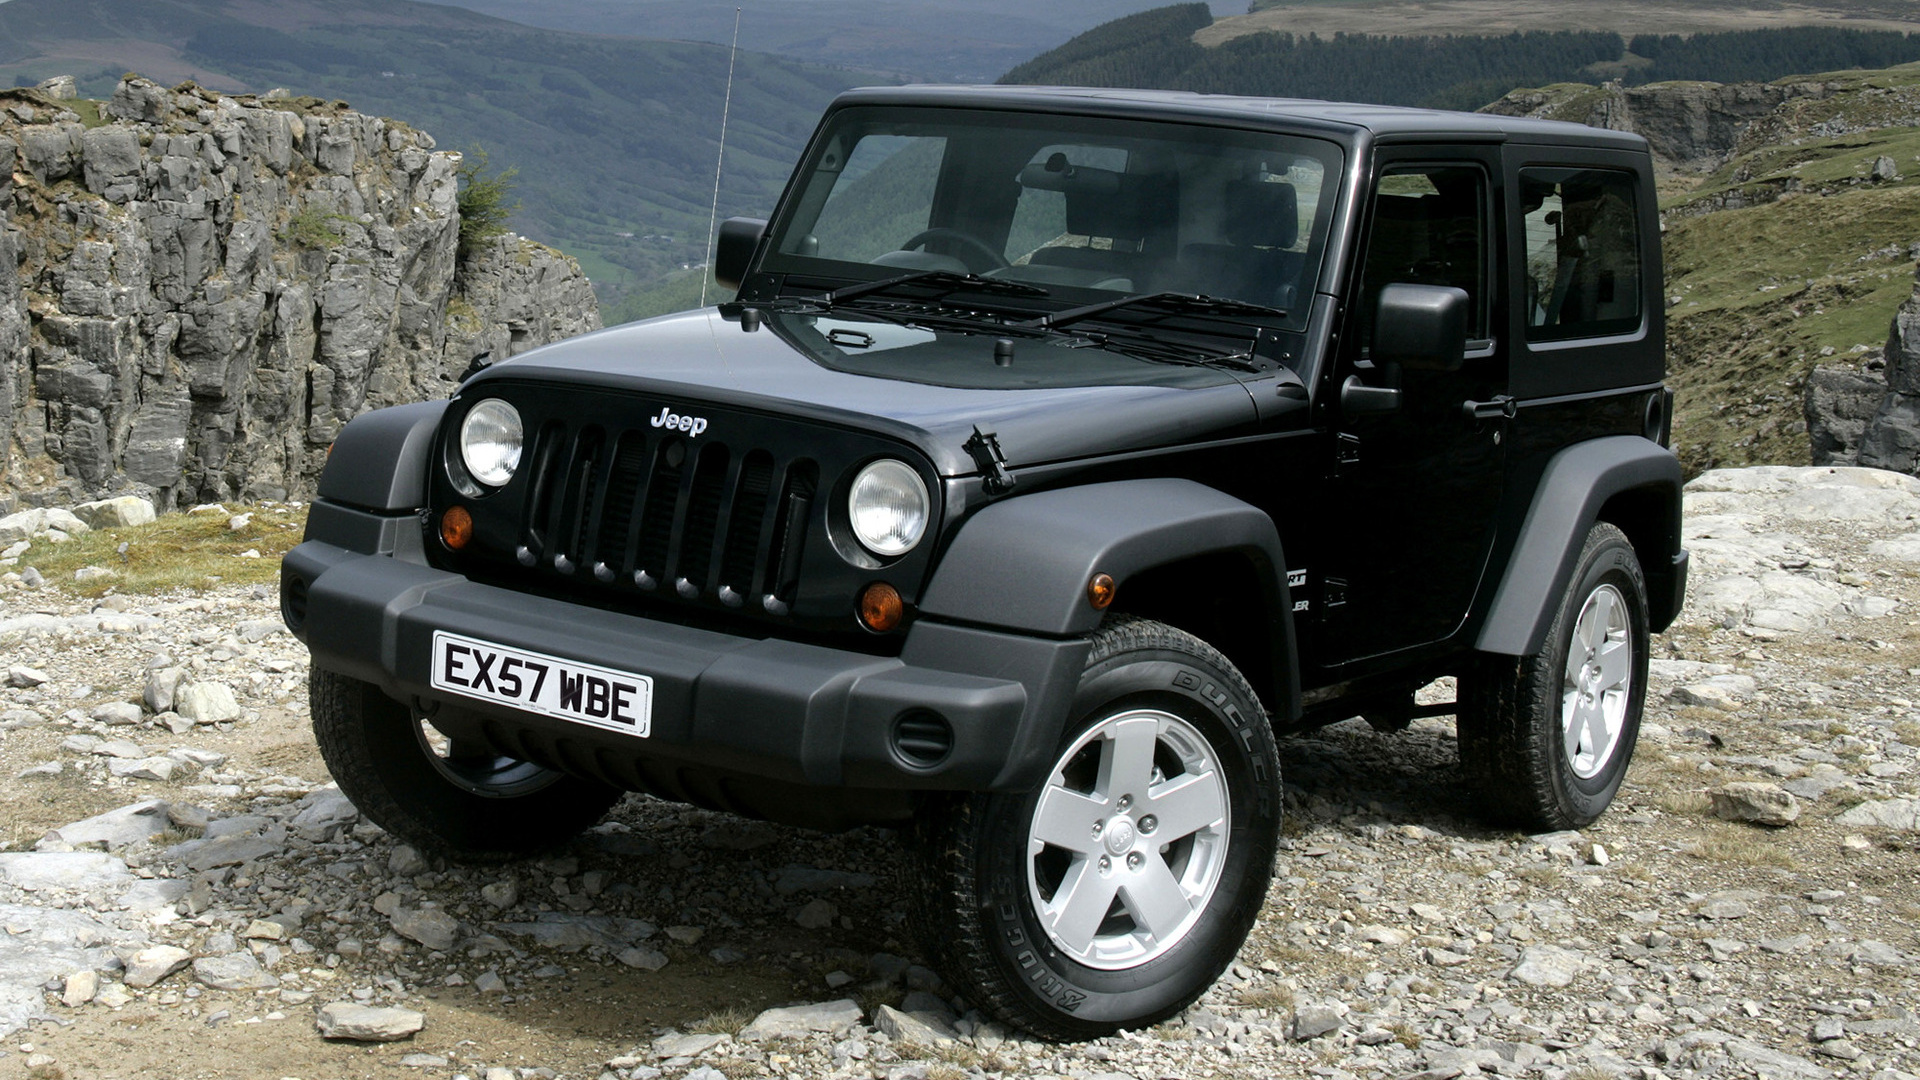 jeep wrangler sport 2007 uk wallpapers and hd images car pixel. Black Bedroom Furniture Sets. Home Design Ideas